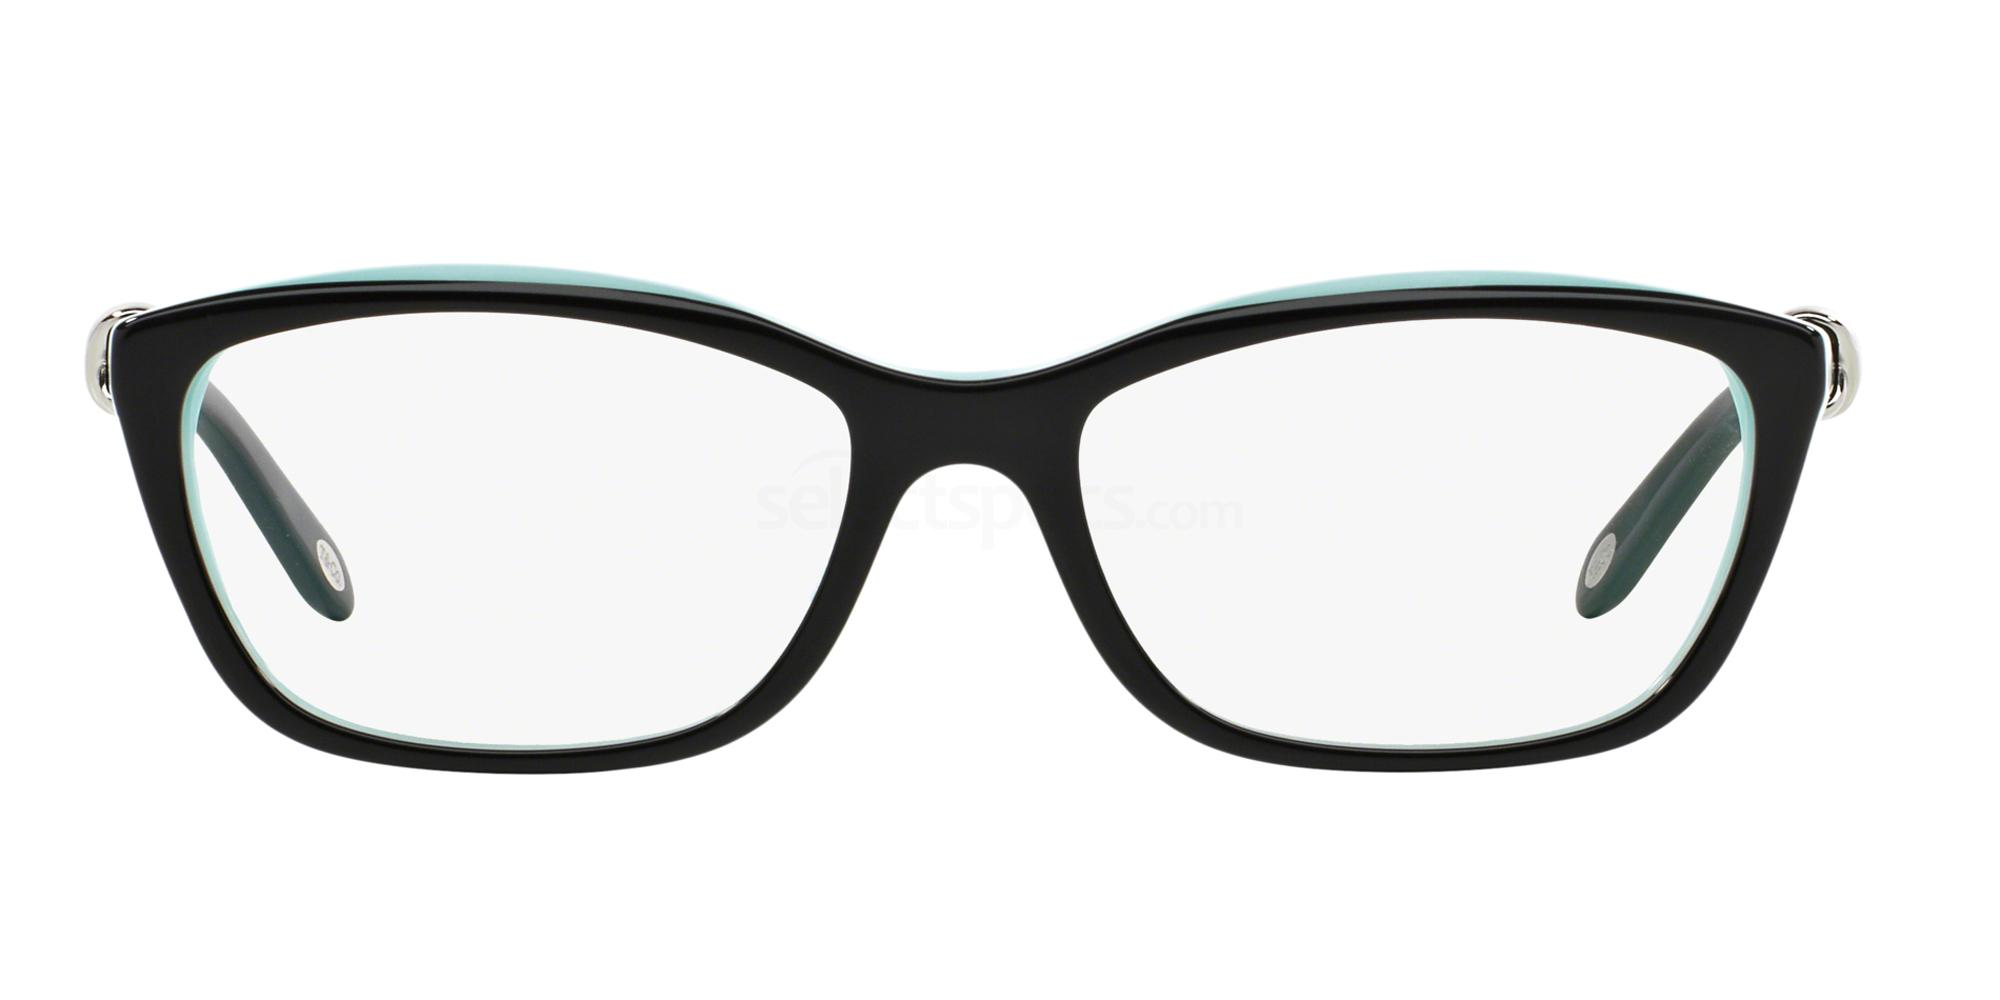 8f56207c6a9d Tiffany   Co. TF2074 glasses. Free lenses   delivery